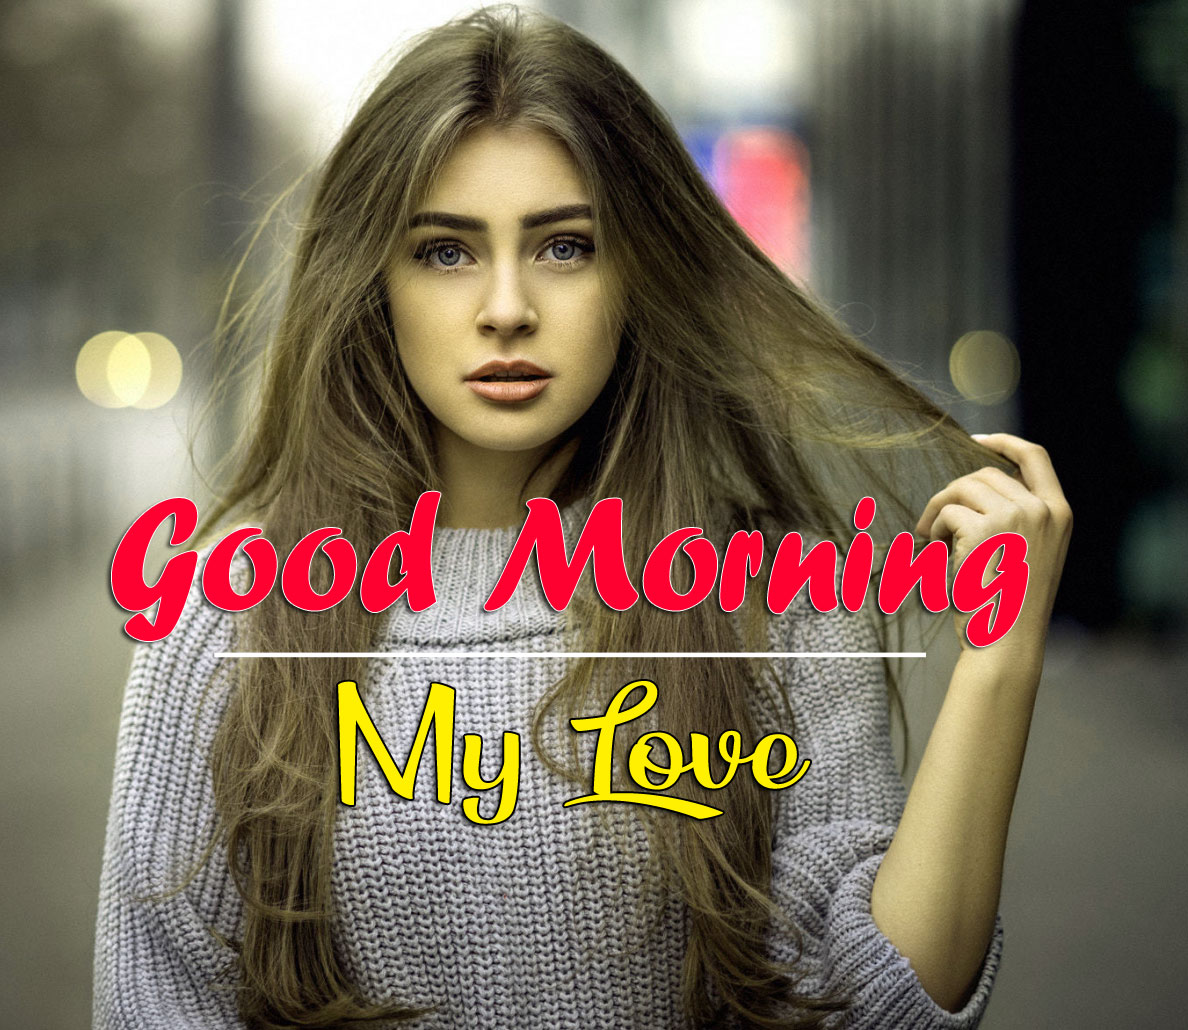 Stylish Girls Good Morning Images Wallpaper